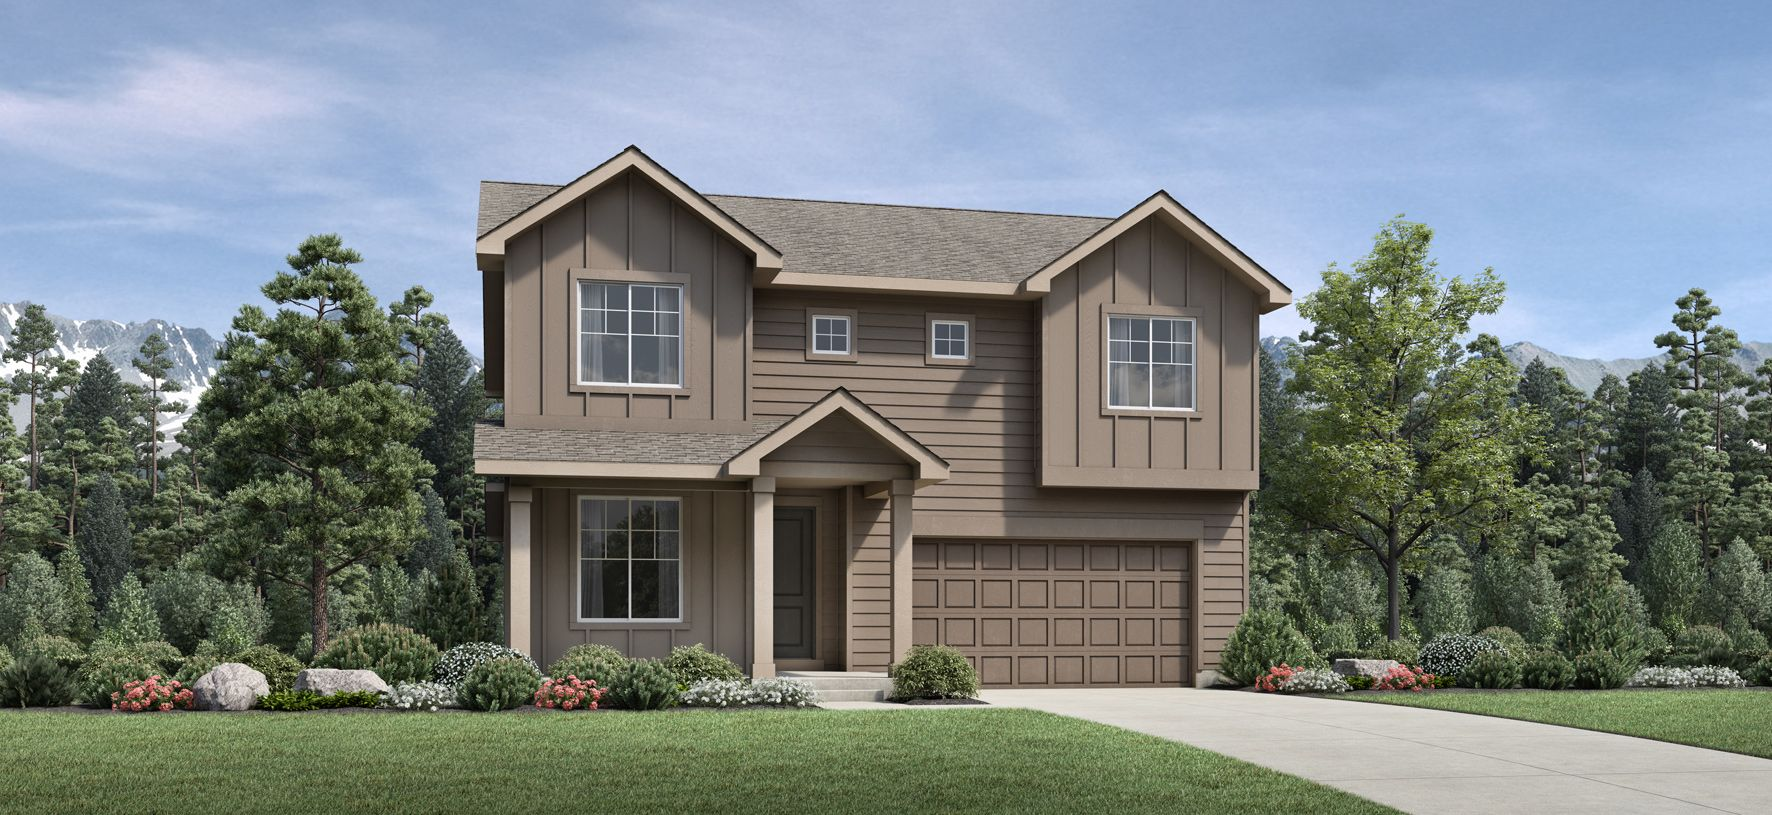 Exterior featured in the Lathrop By Toll Brothers in Denver, CO